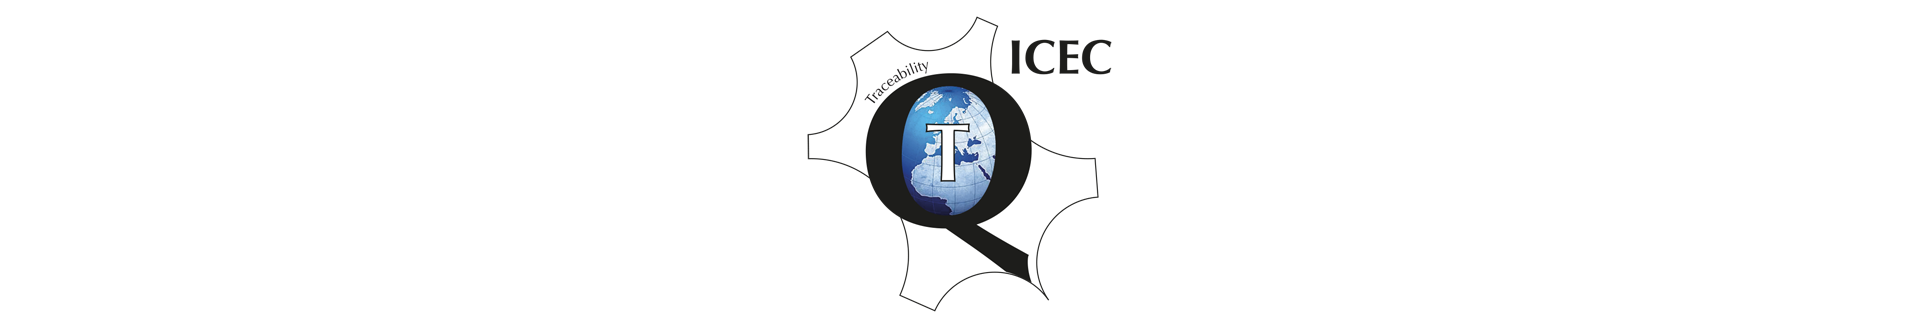 Certification of Raw Material Traceability CEC TS SC 410